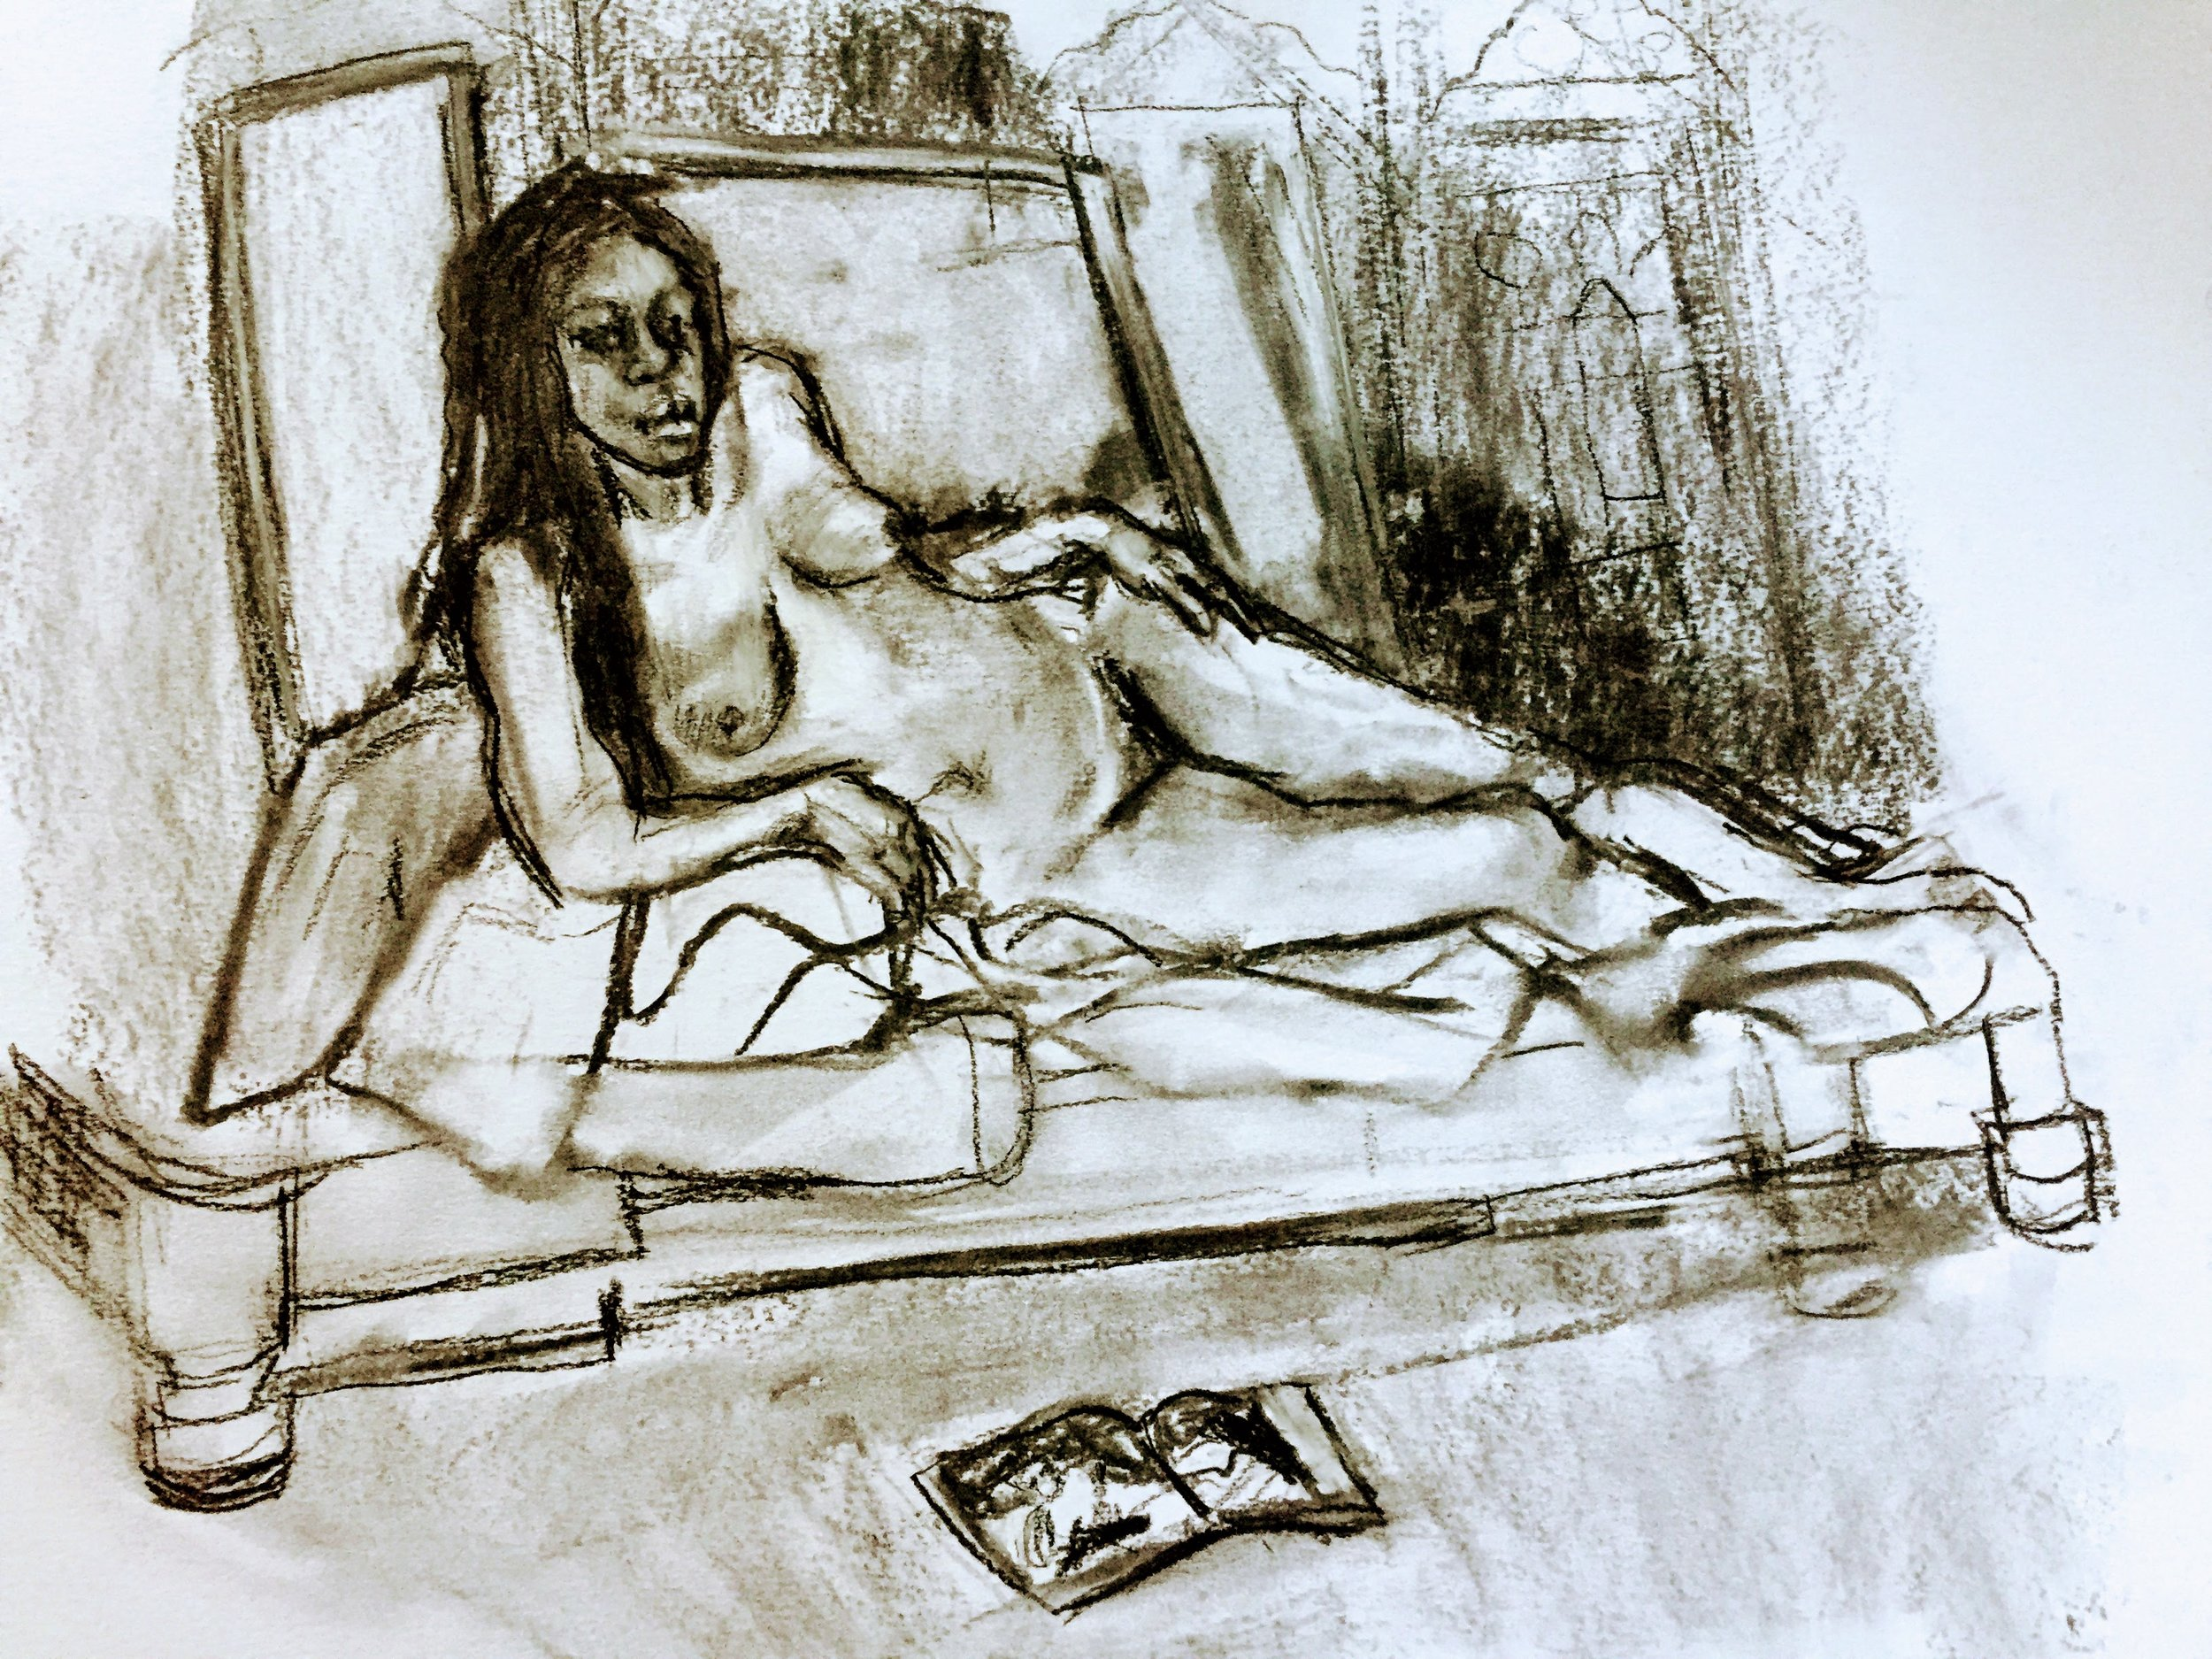 Reclining Jacqui   Charcoal on paper  by Sally Hyman